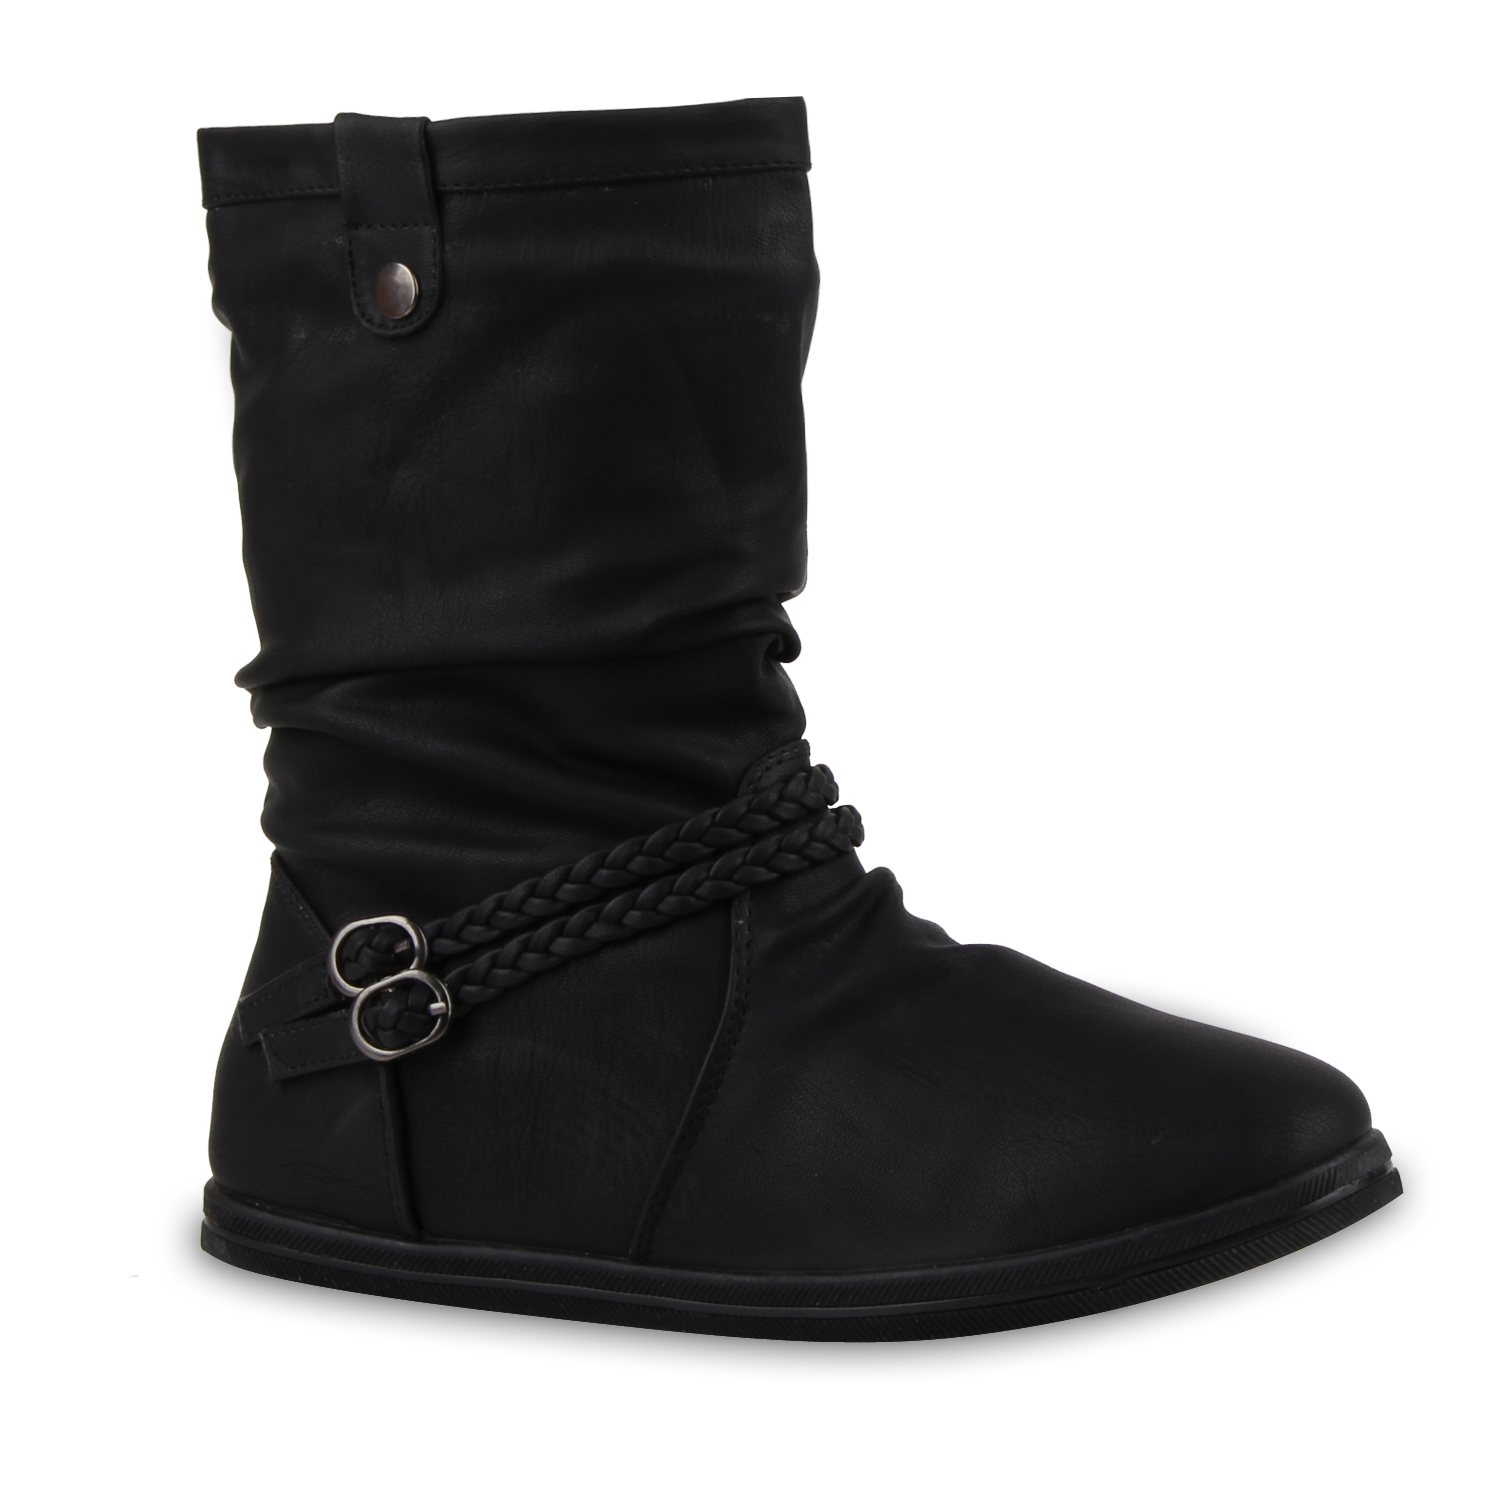 top winter stiefel boots gef ttert 99908 damen schuhe ebay. Black Bedroom Furniture Sets. Home Design Ideas